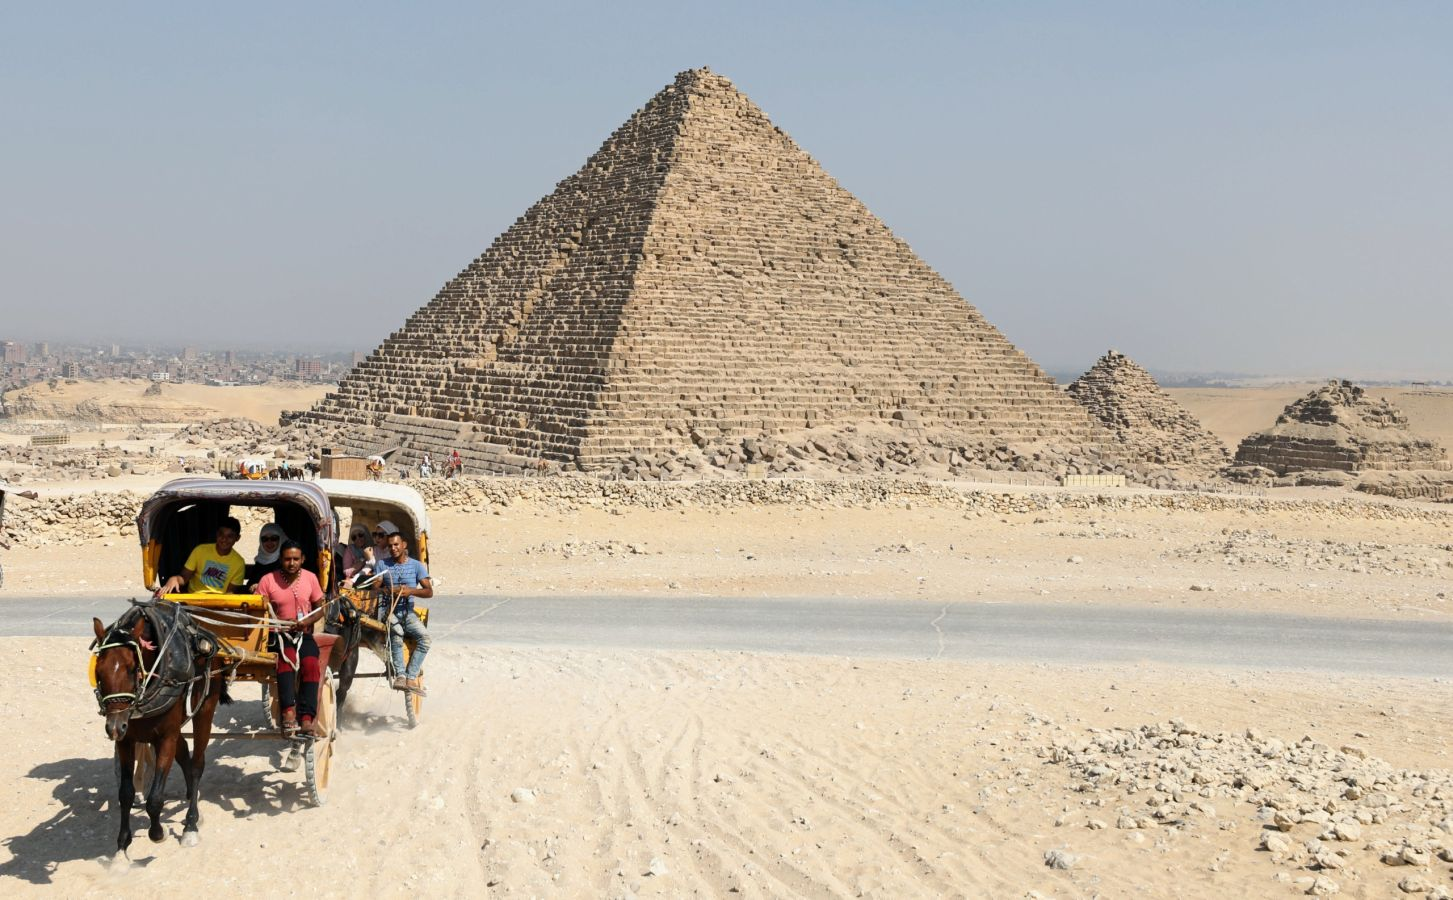 a discussion of how the pyramids of egypt were built The oldest known pyramids in egypt are found at the saqqara burial ground, northwest of memphis among these, the pyramid of djoser was the first to be built, having been completed in 2611 bc.